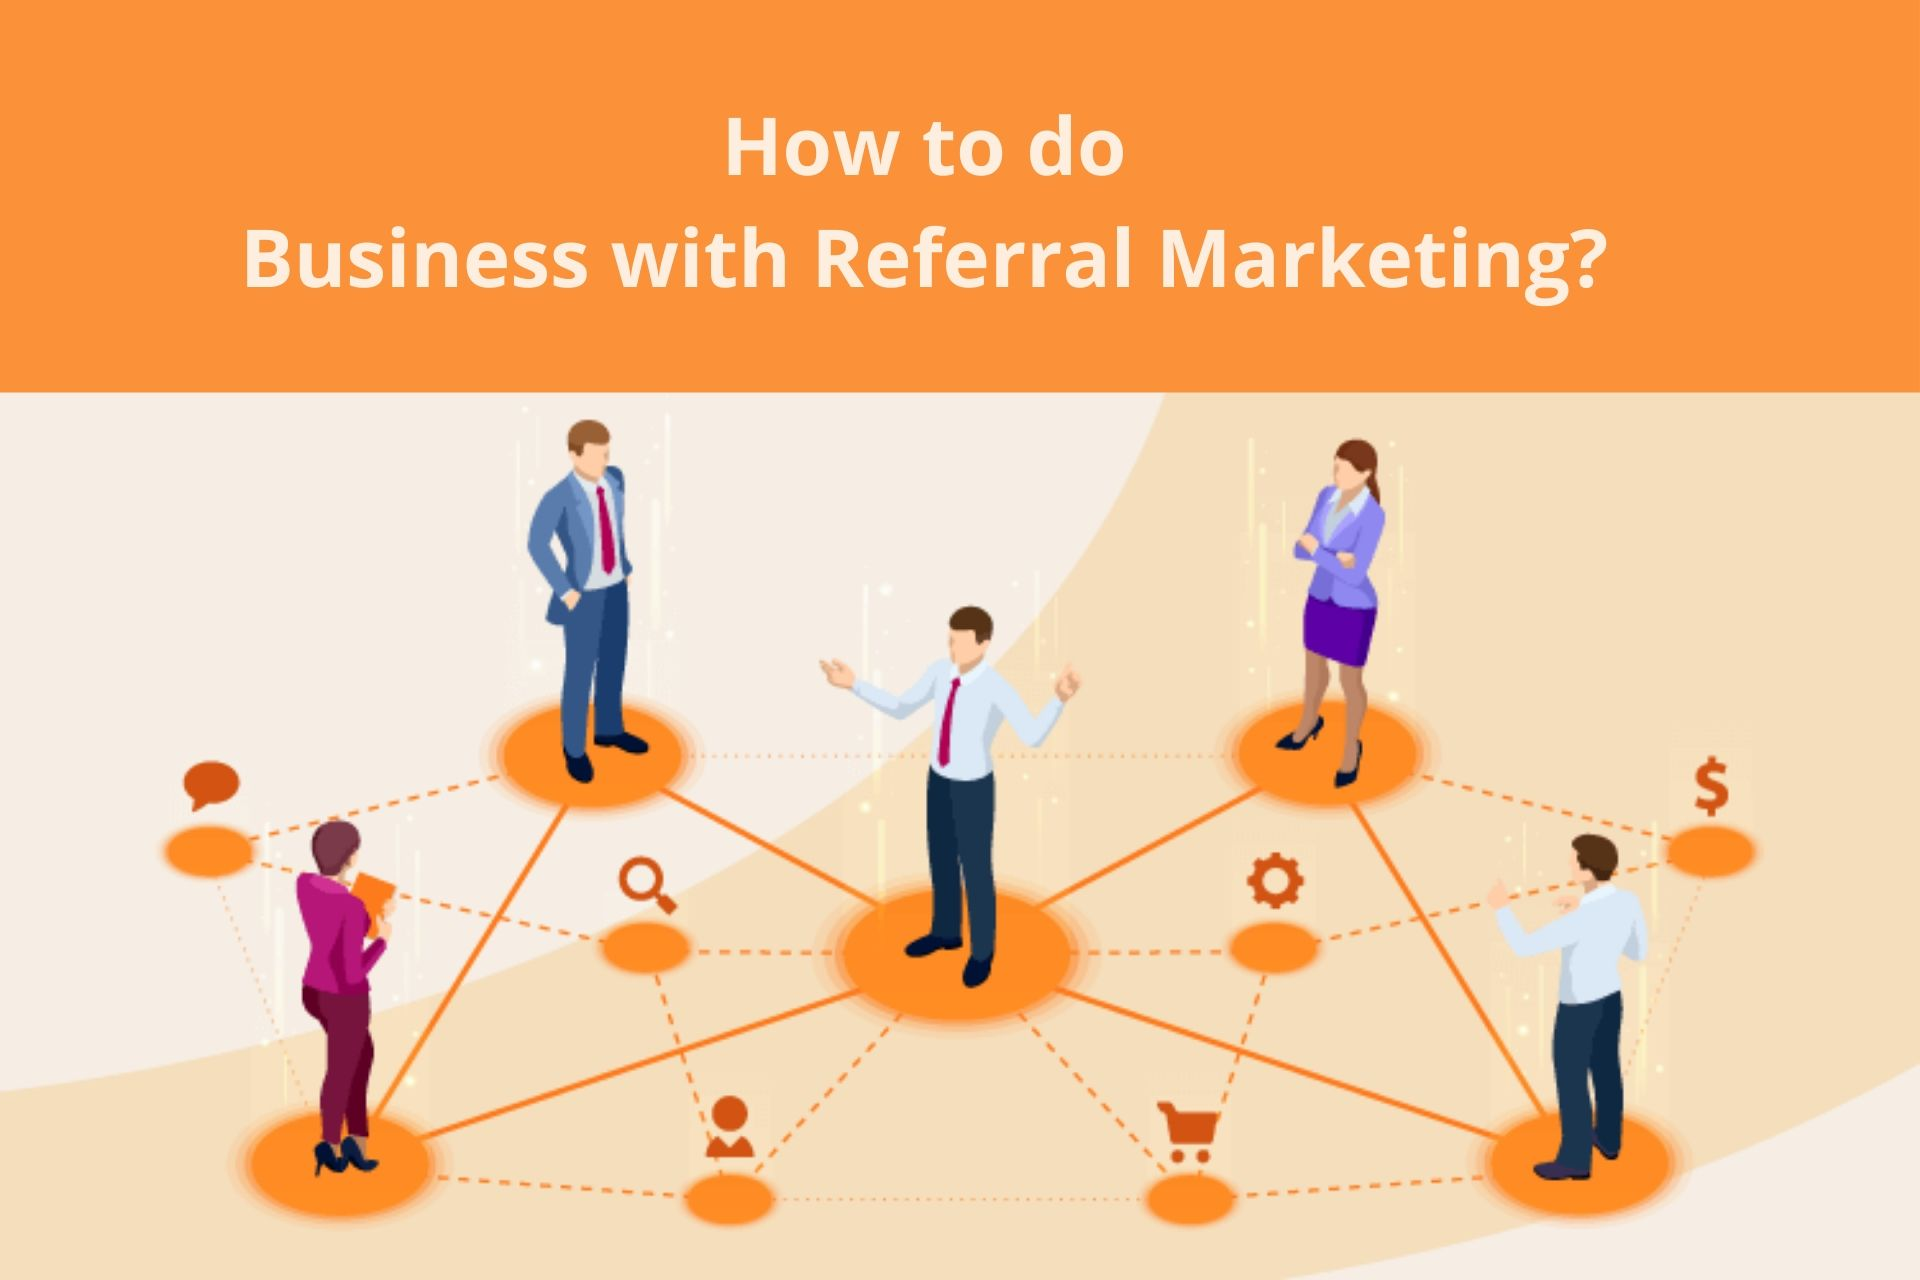 How to do Business with Referral Marketing?